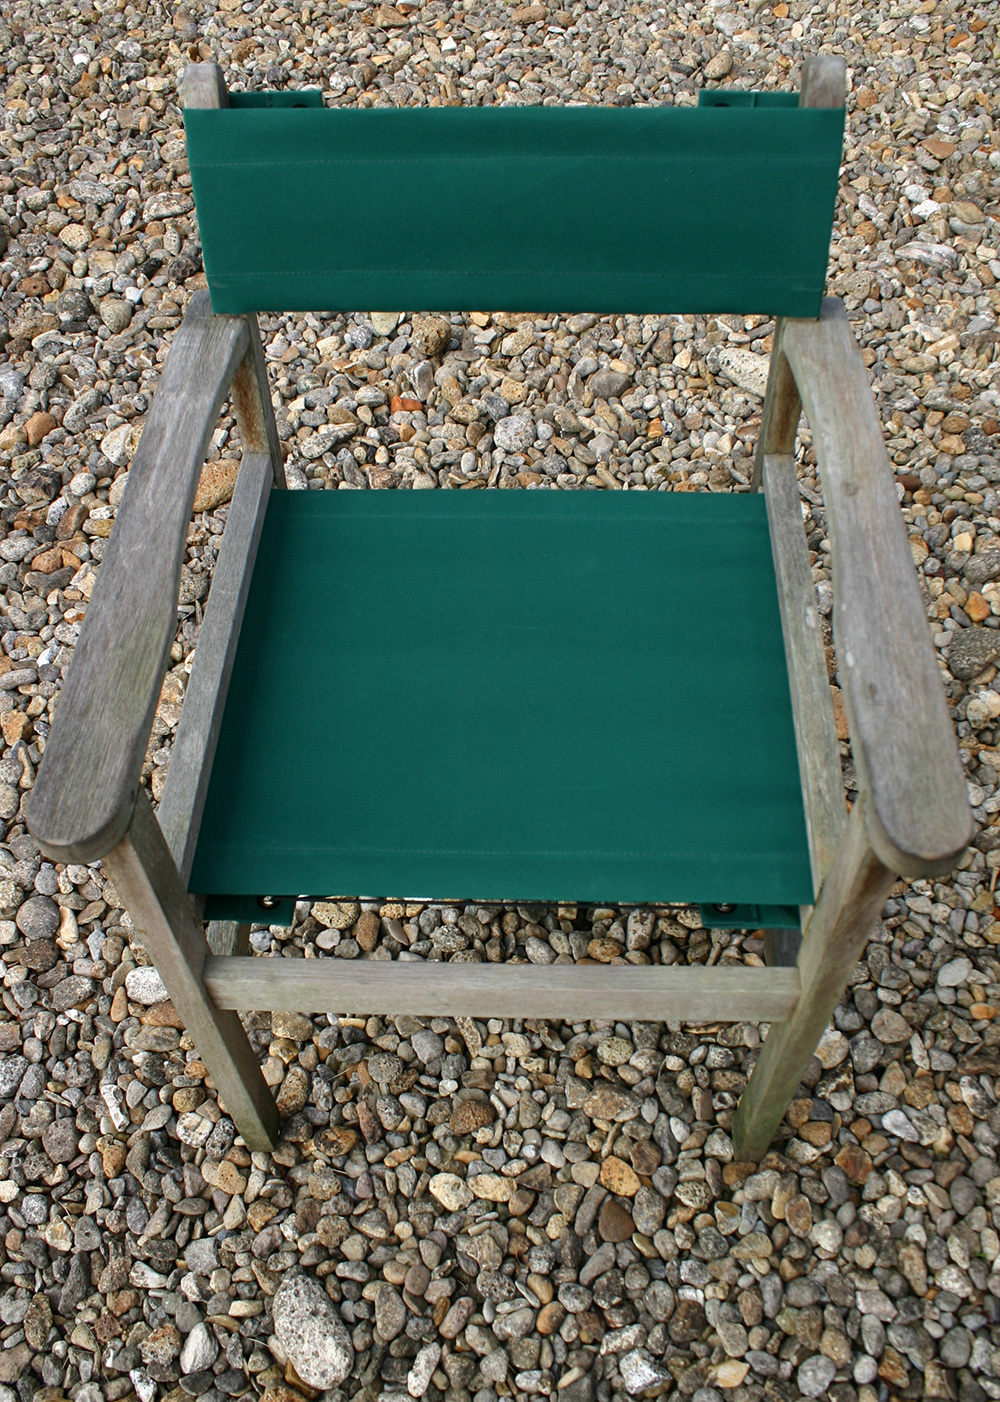 4/9 Chair recovered in Planosol Fir Green canvas